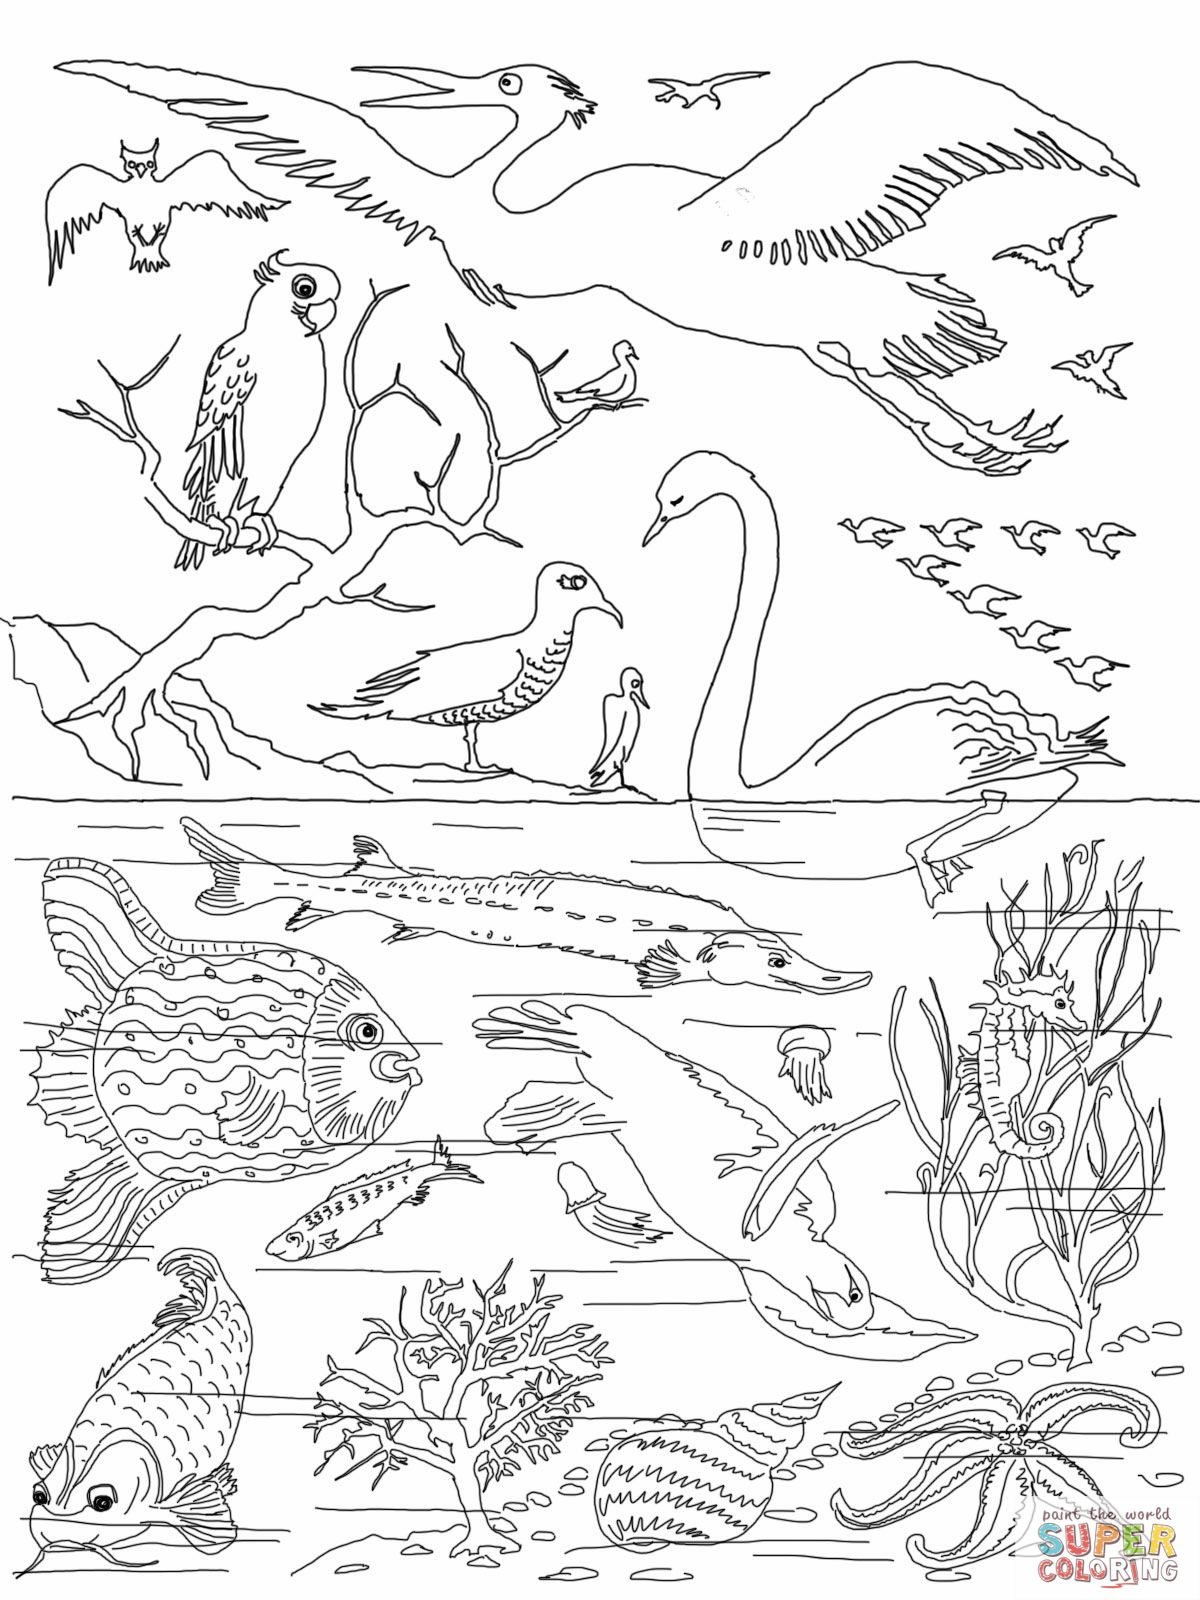 5th Day Of Creation Bible Coloring Pages